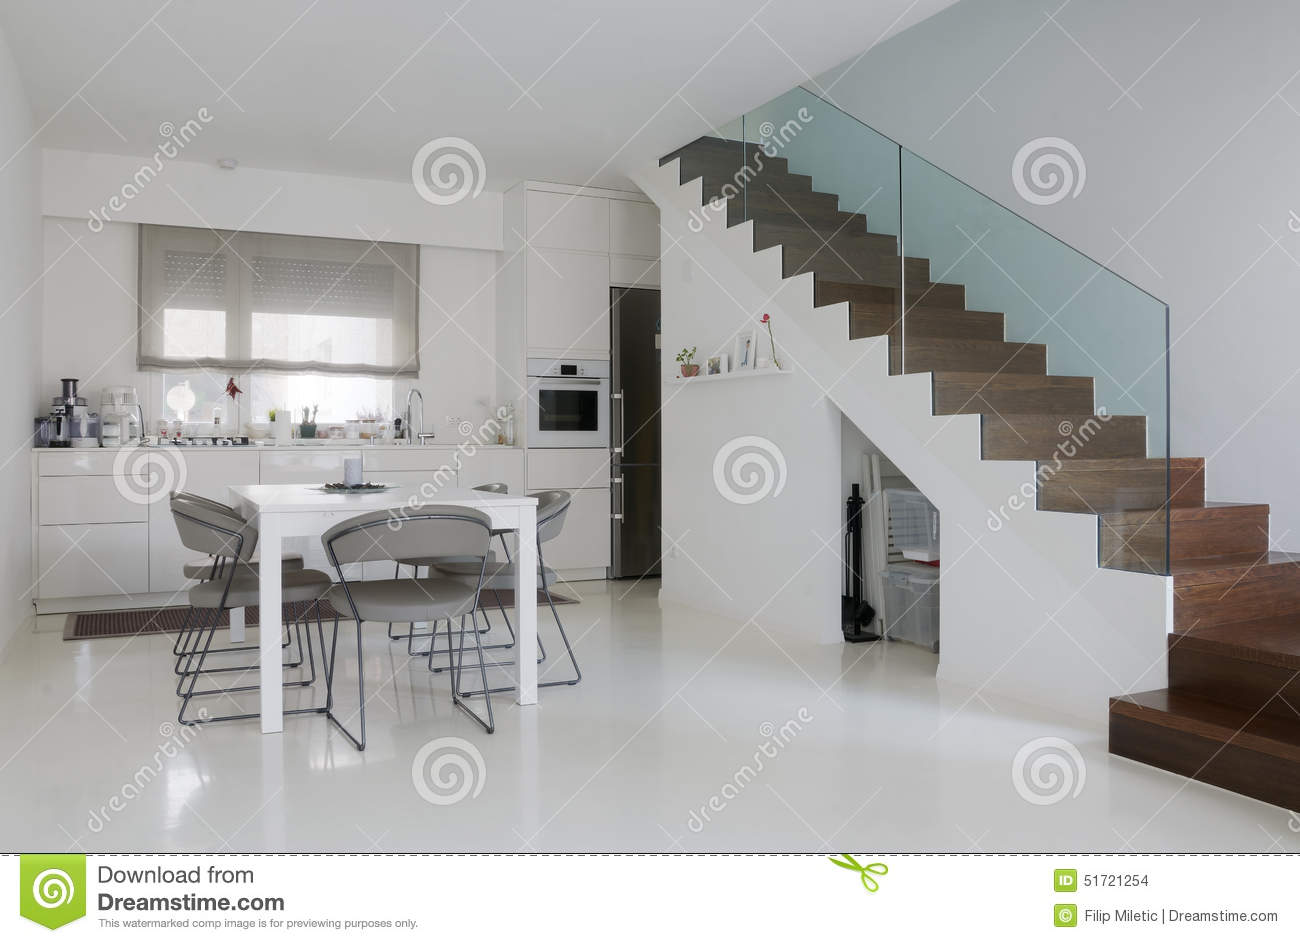 White Kitchen And Dining Room Stock Photo - Image: 51721254